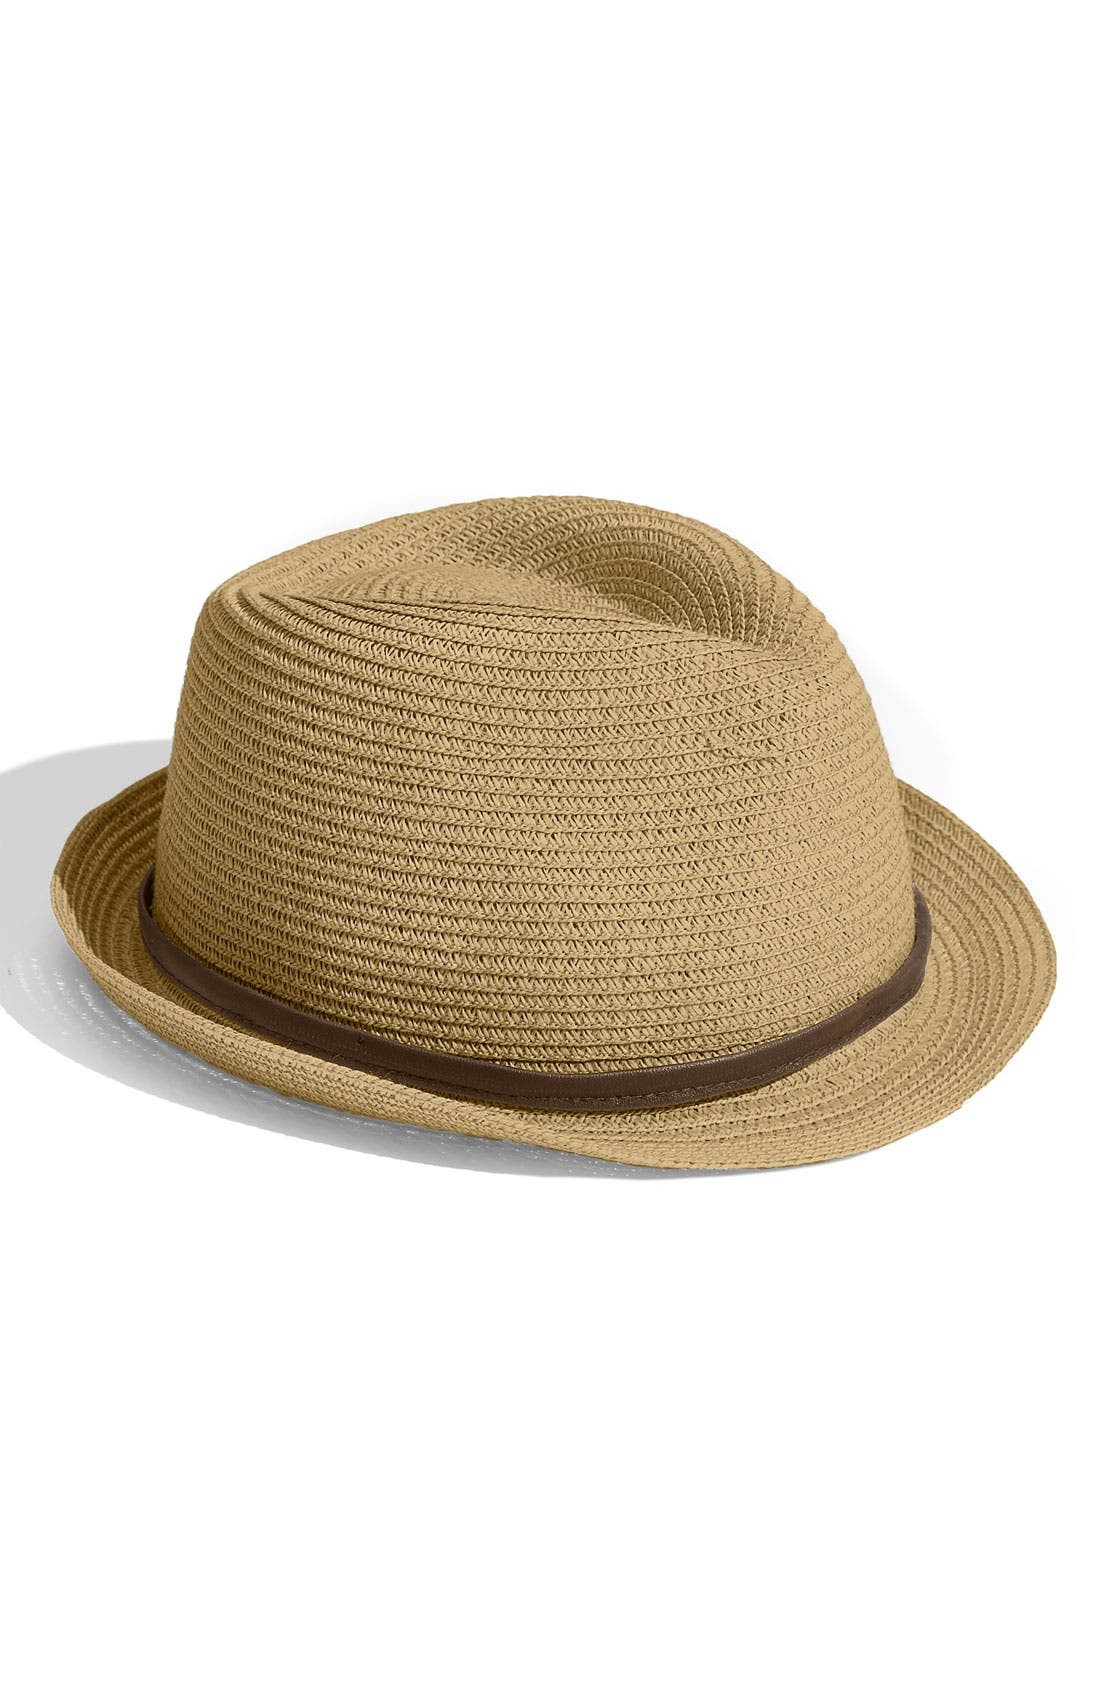 Main Image - Make + Model Straw Bowler Hat